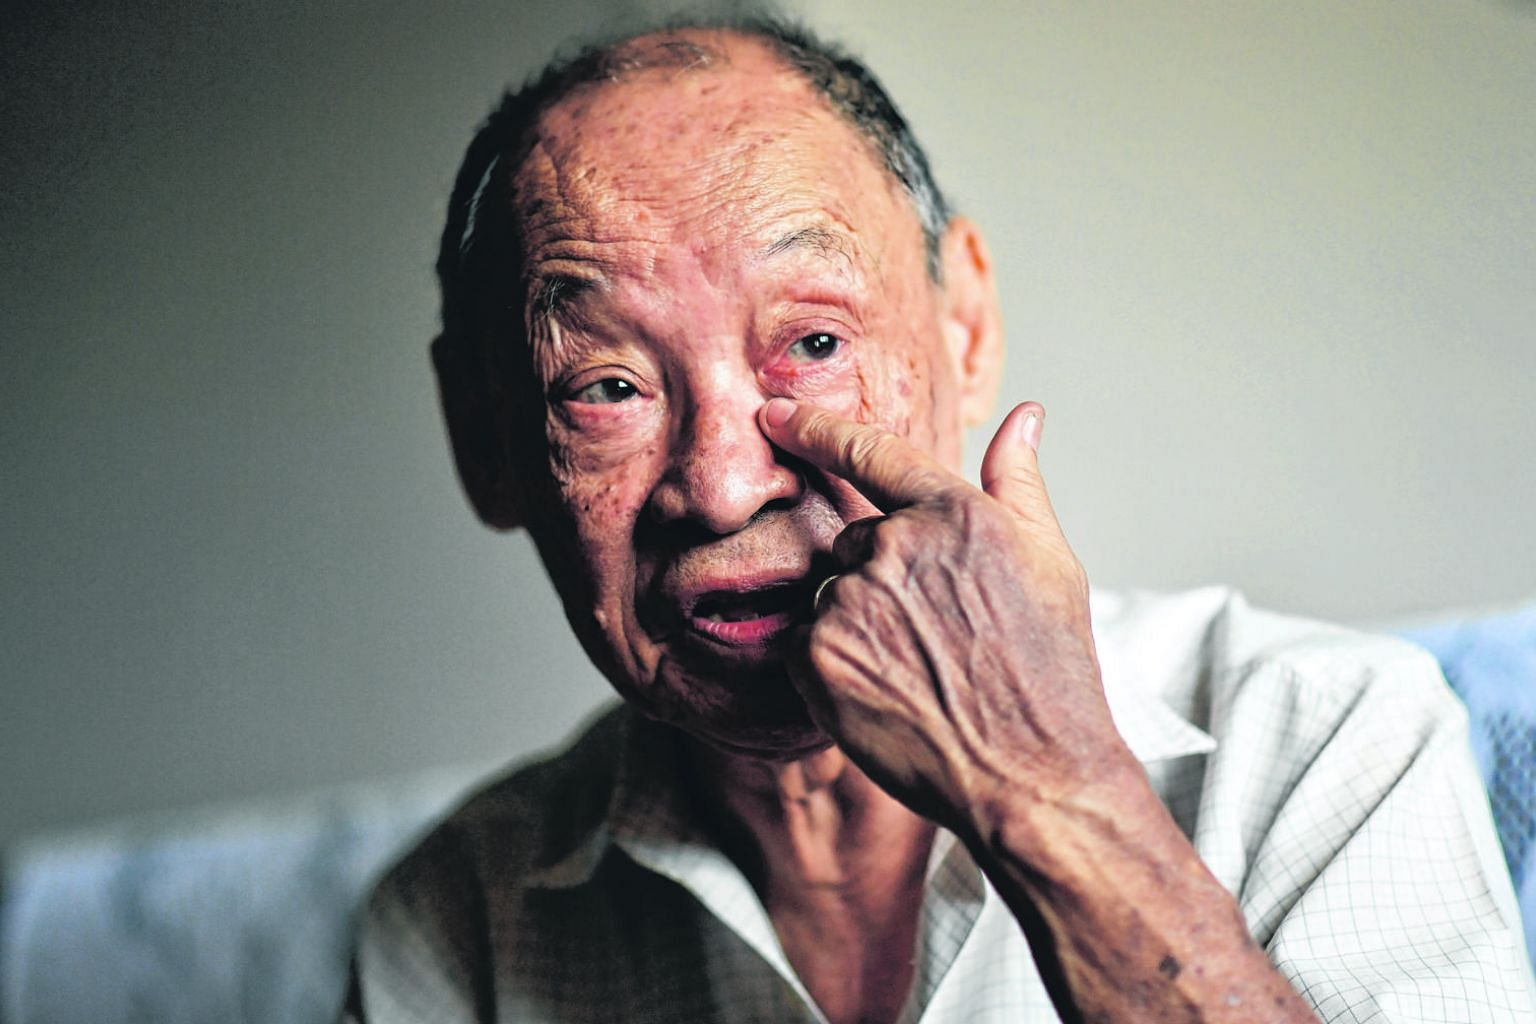 In a recent case, Mr Seow Ban Yam, 83, who underwent surgery at the Singapore National Eye Centre, received only $4.50 from MediShield Life for his subsidised bill of $4,477 - about $1,400 above the MediShield Life claim limit.